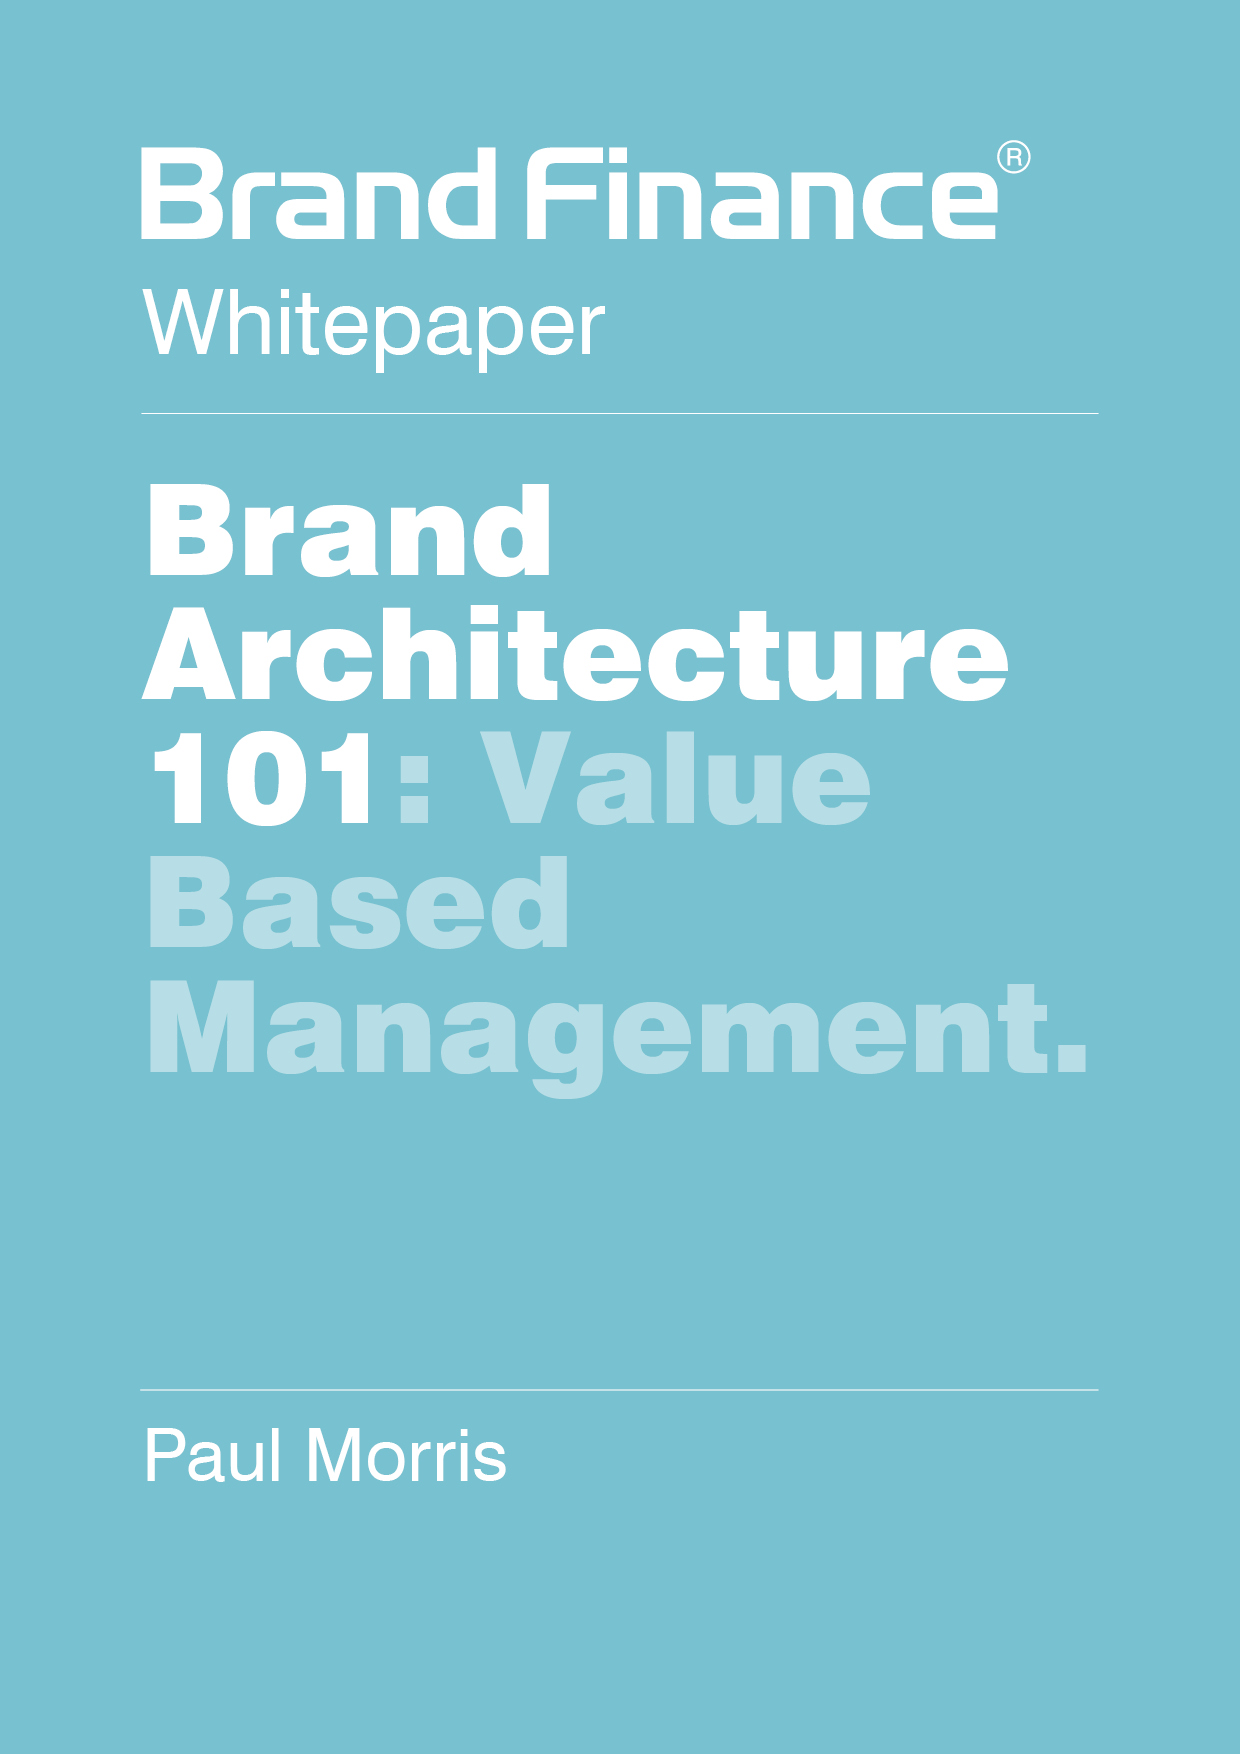 Brand Architecture 101: Value Based Management